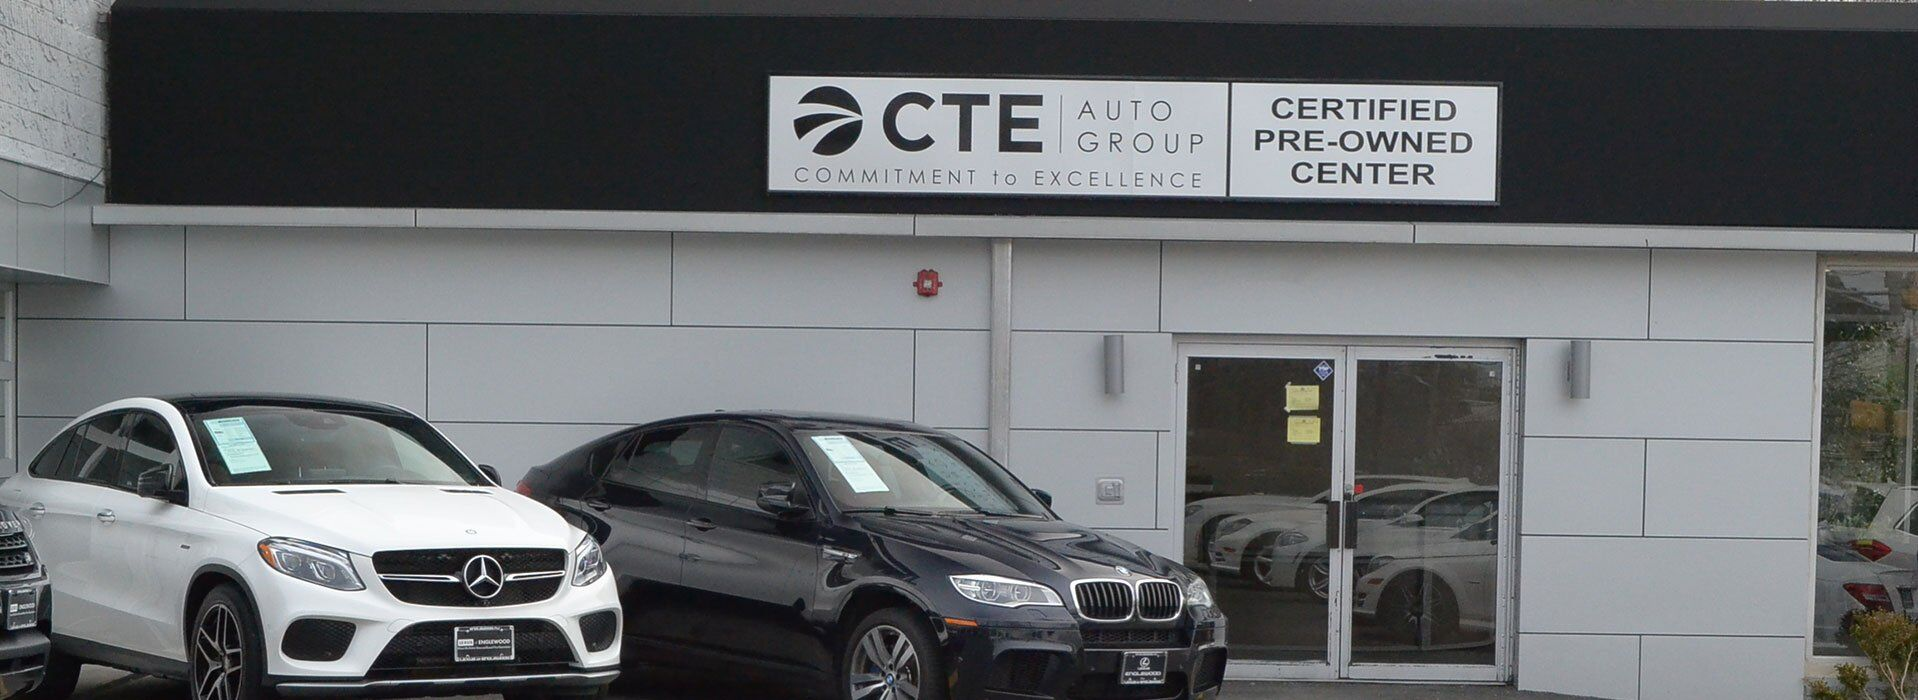 CTE Auto Group